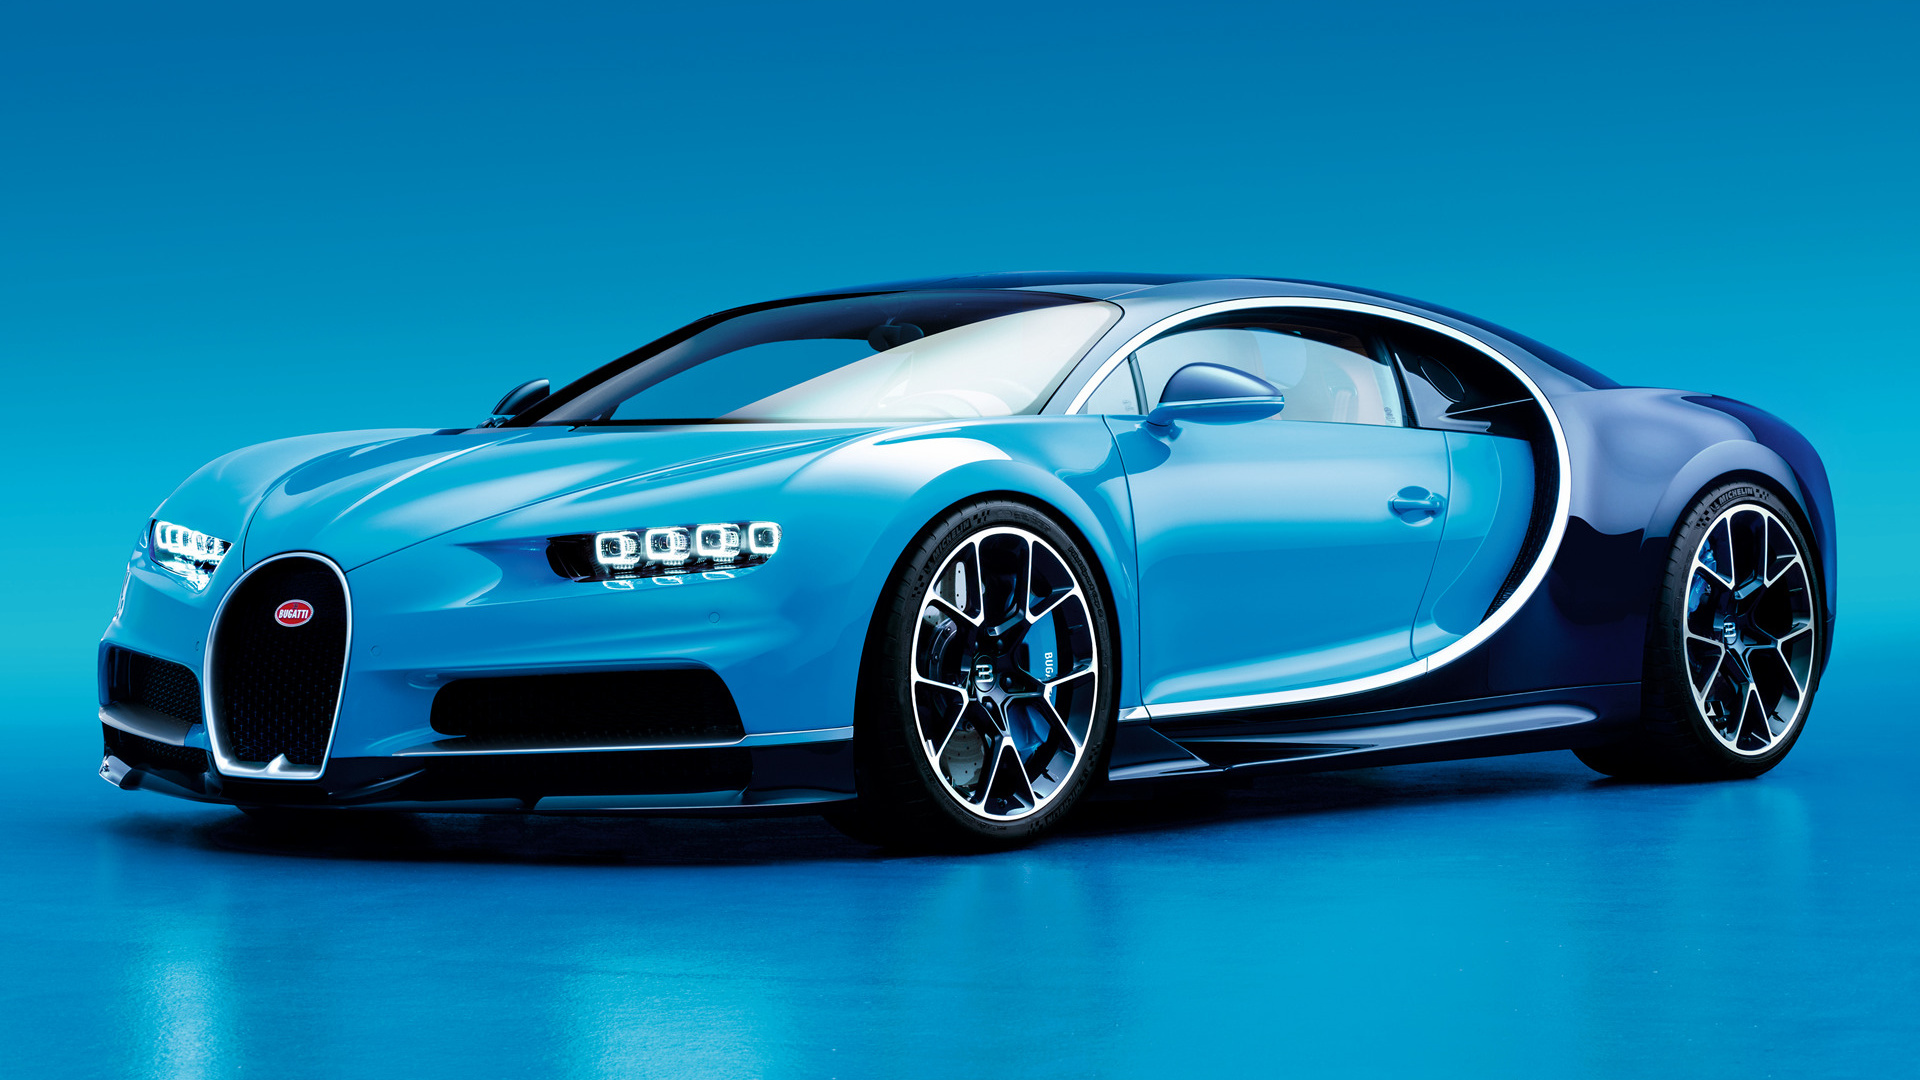 Bugatti Chiron With 1500 Horsepower